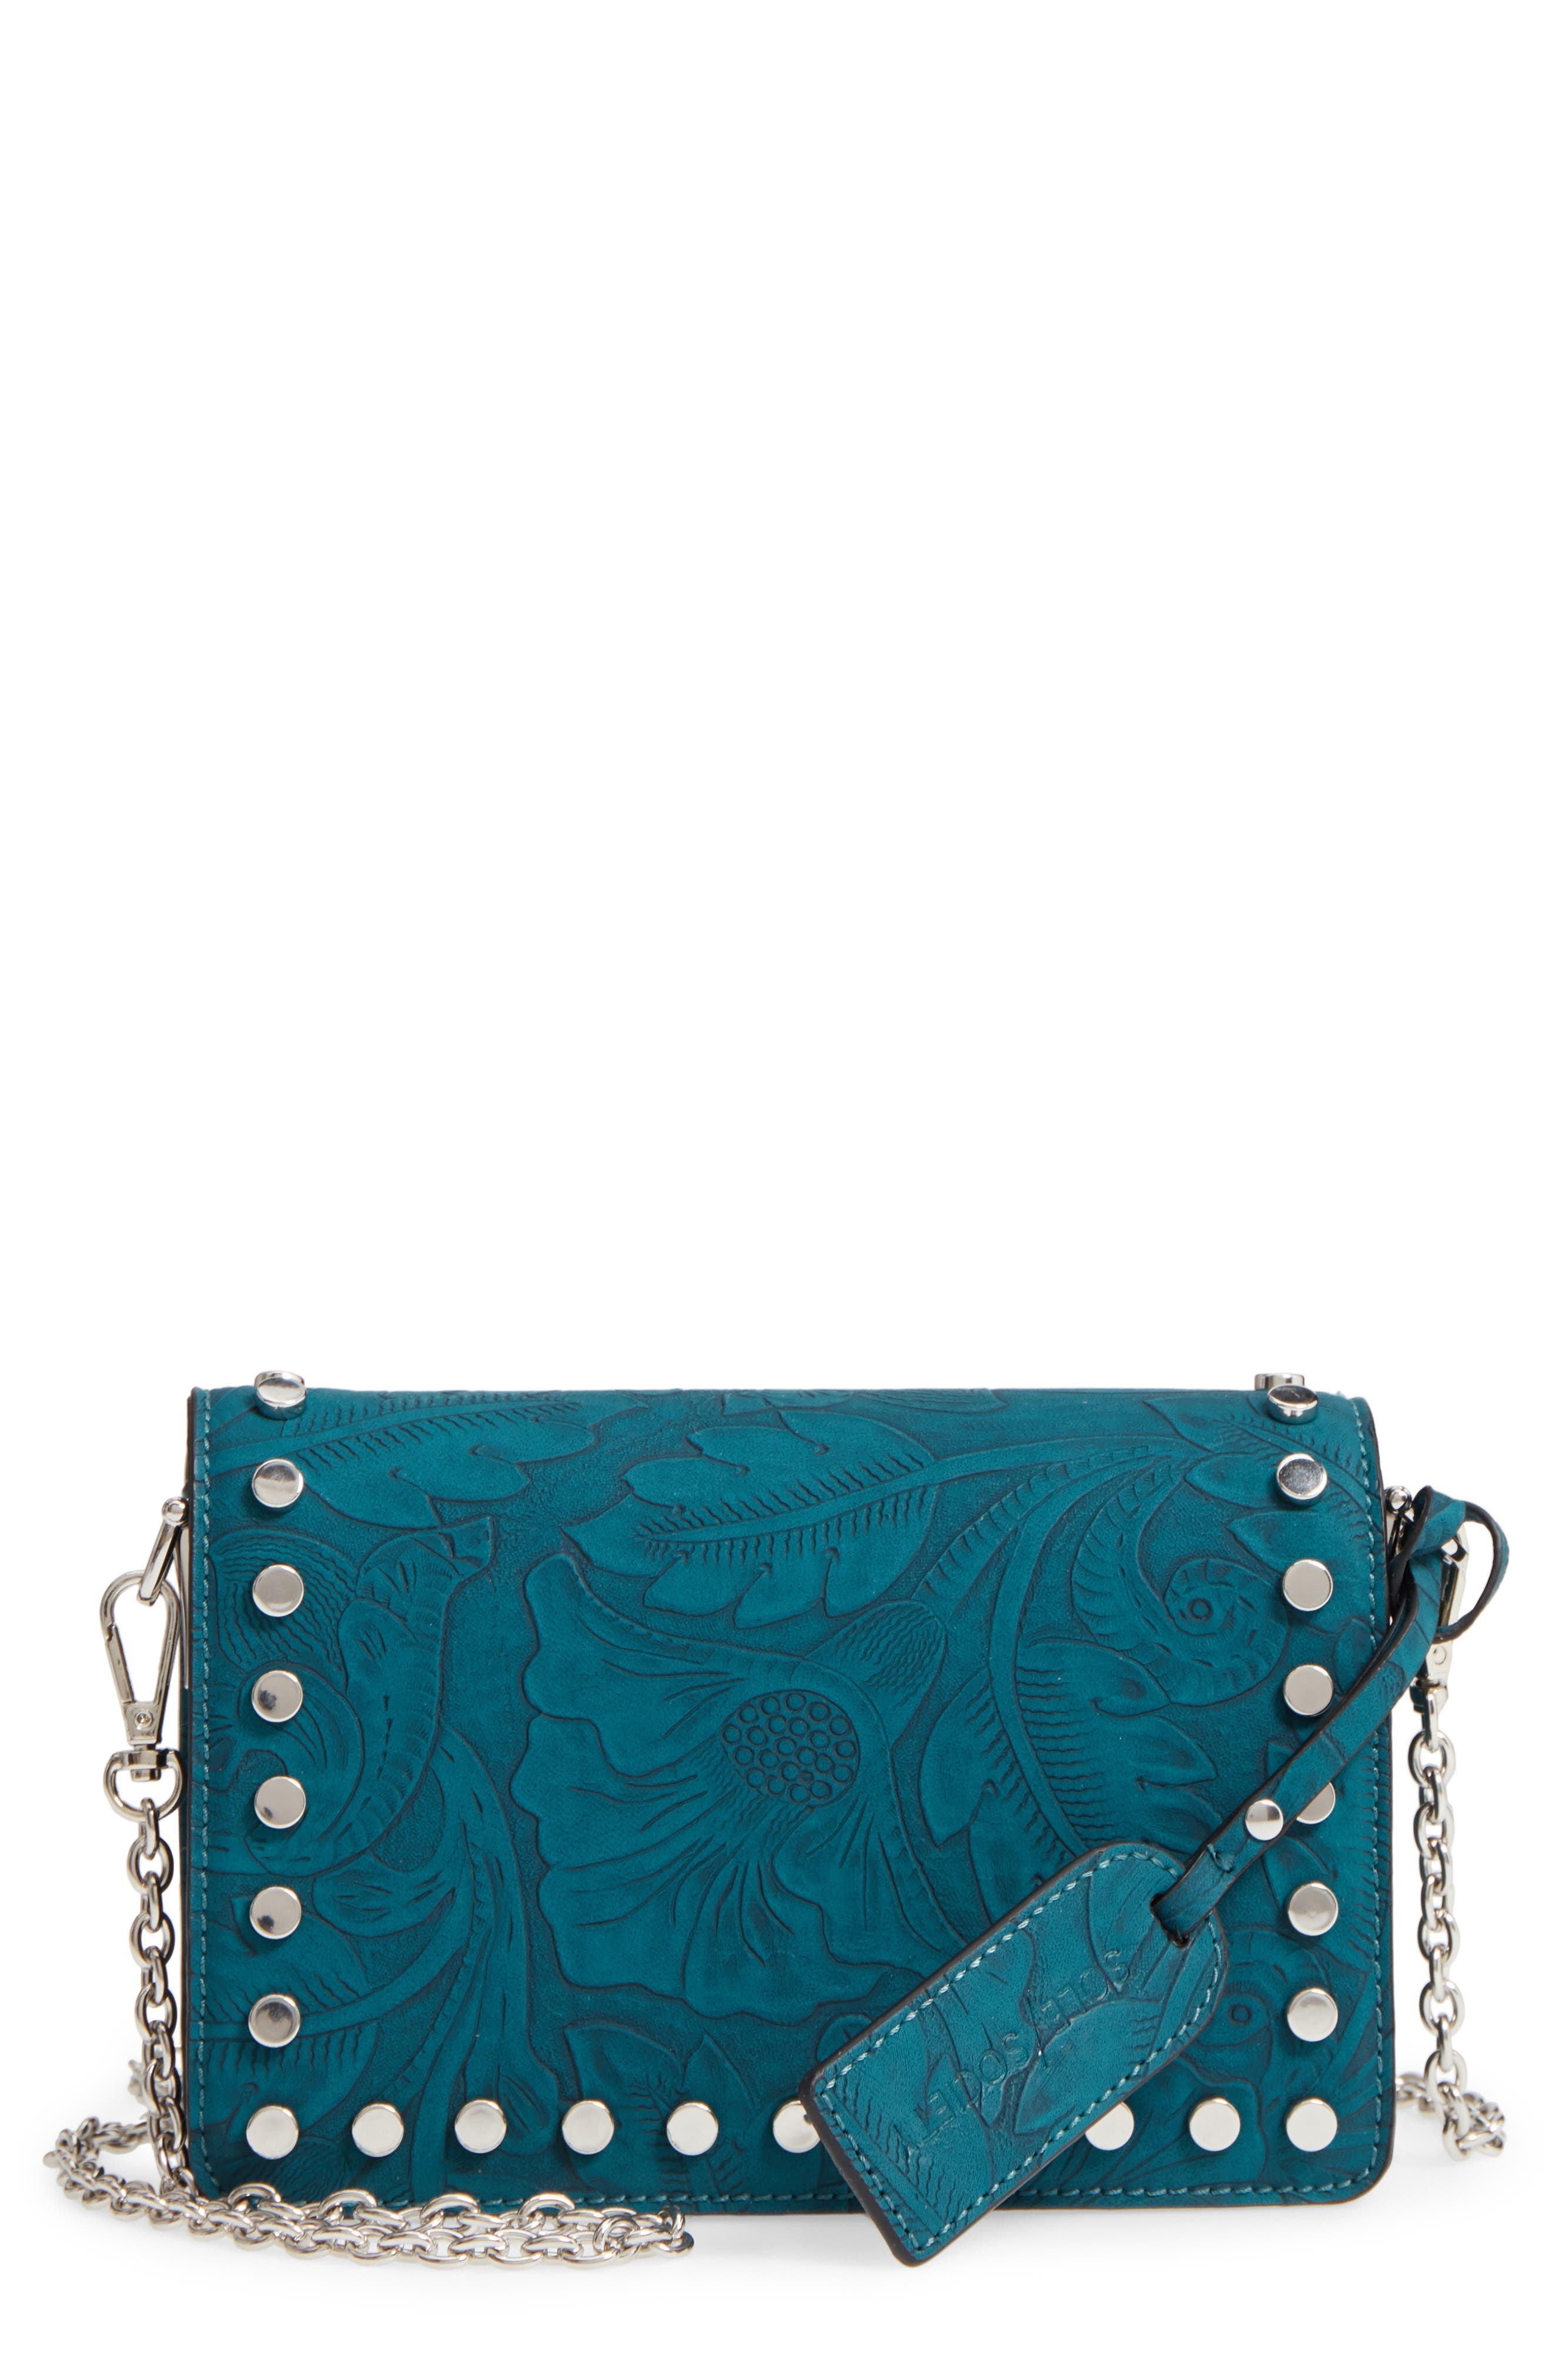 Hawna Faux Leather Crossbody,                             Main thumbnail 1, color,                             Teal